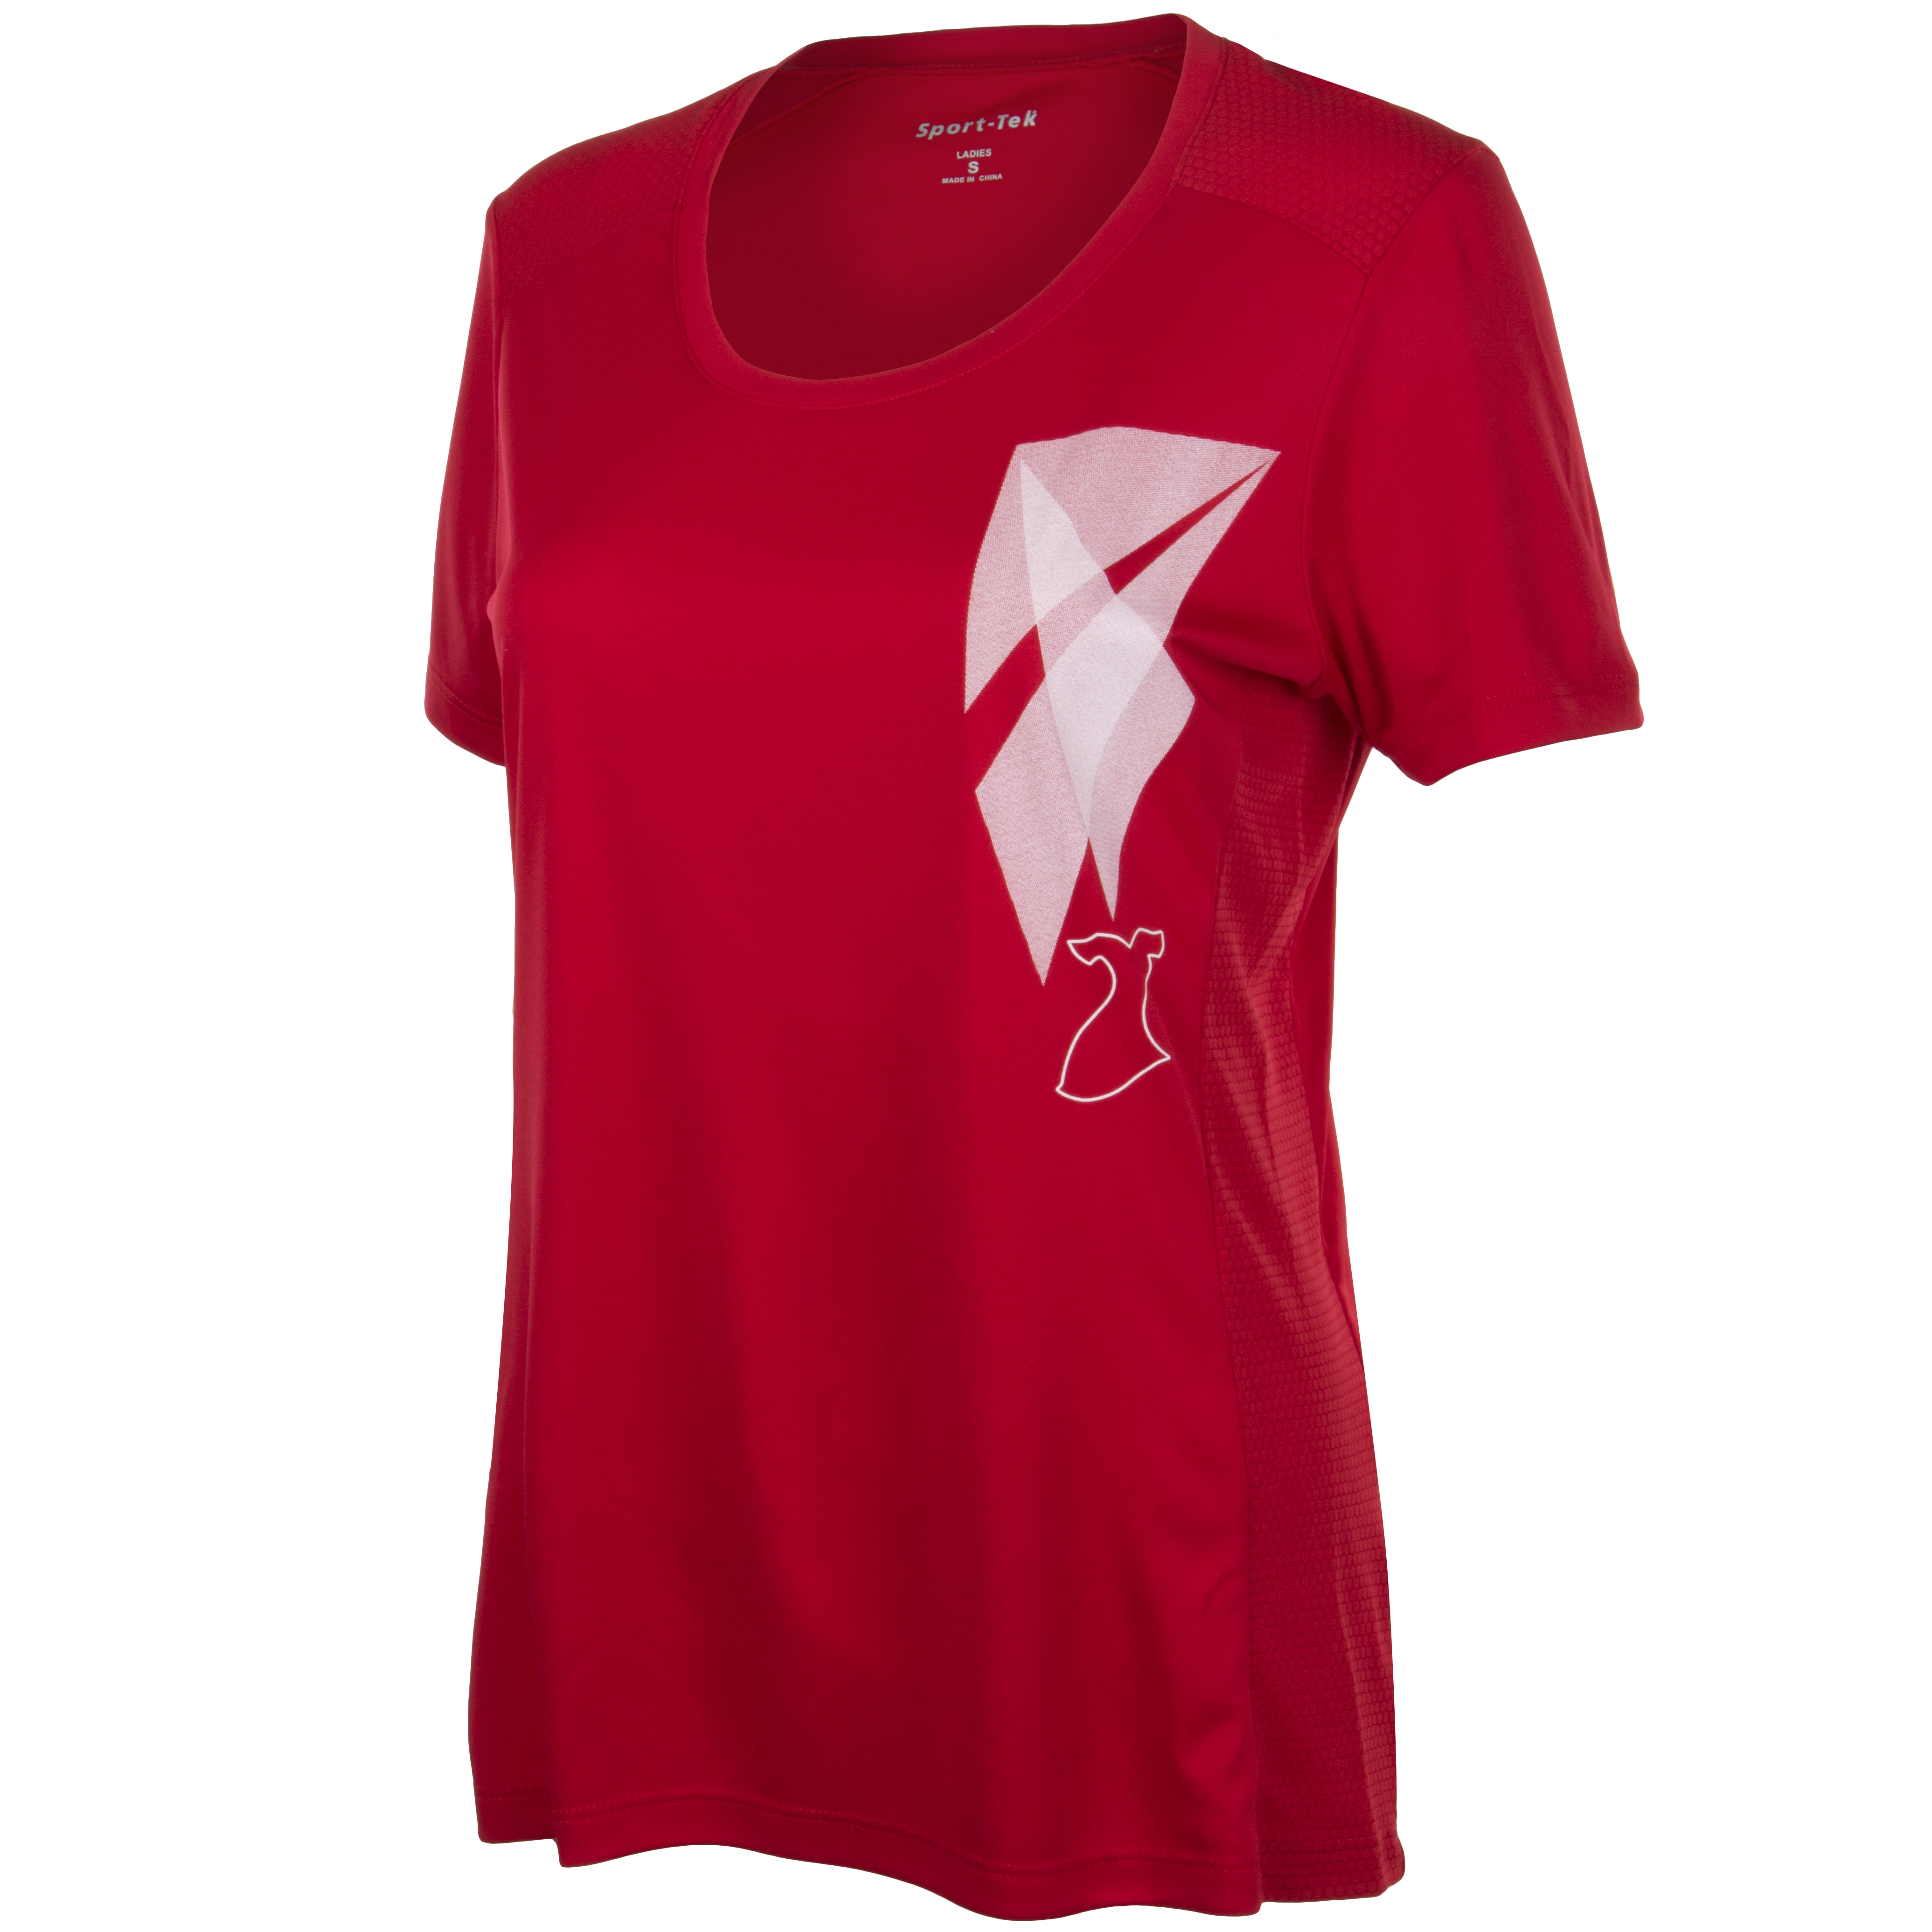 Go Red For Women T-Shirts, Tees - AHA